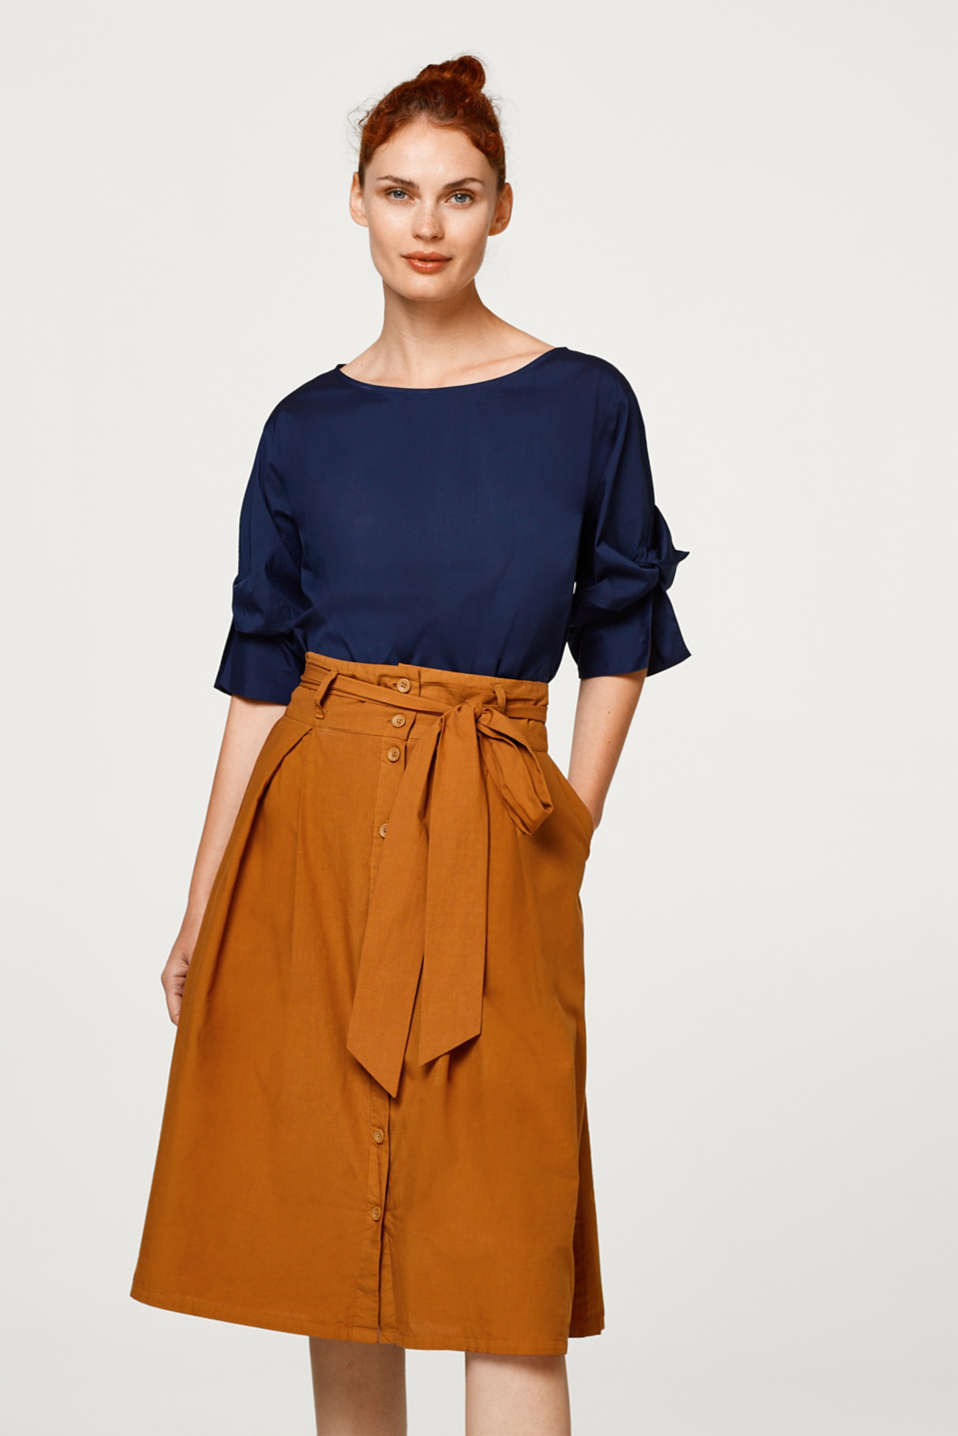 Esprit - Blouse with draped three-quarter length sleeves